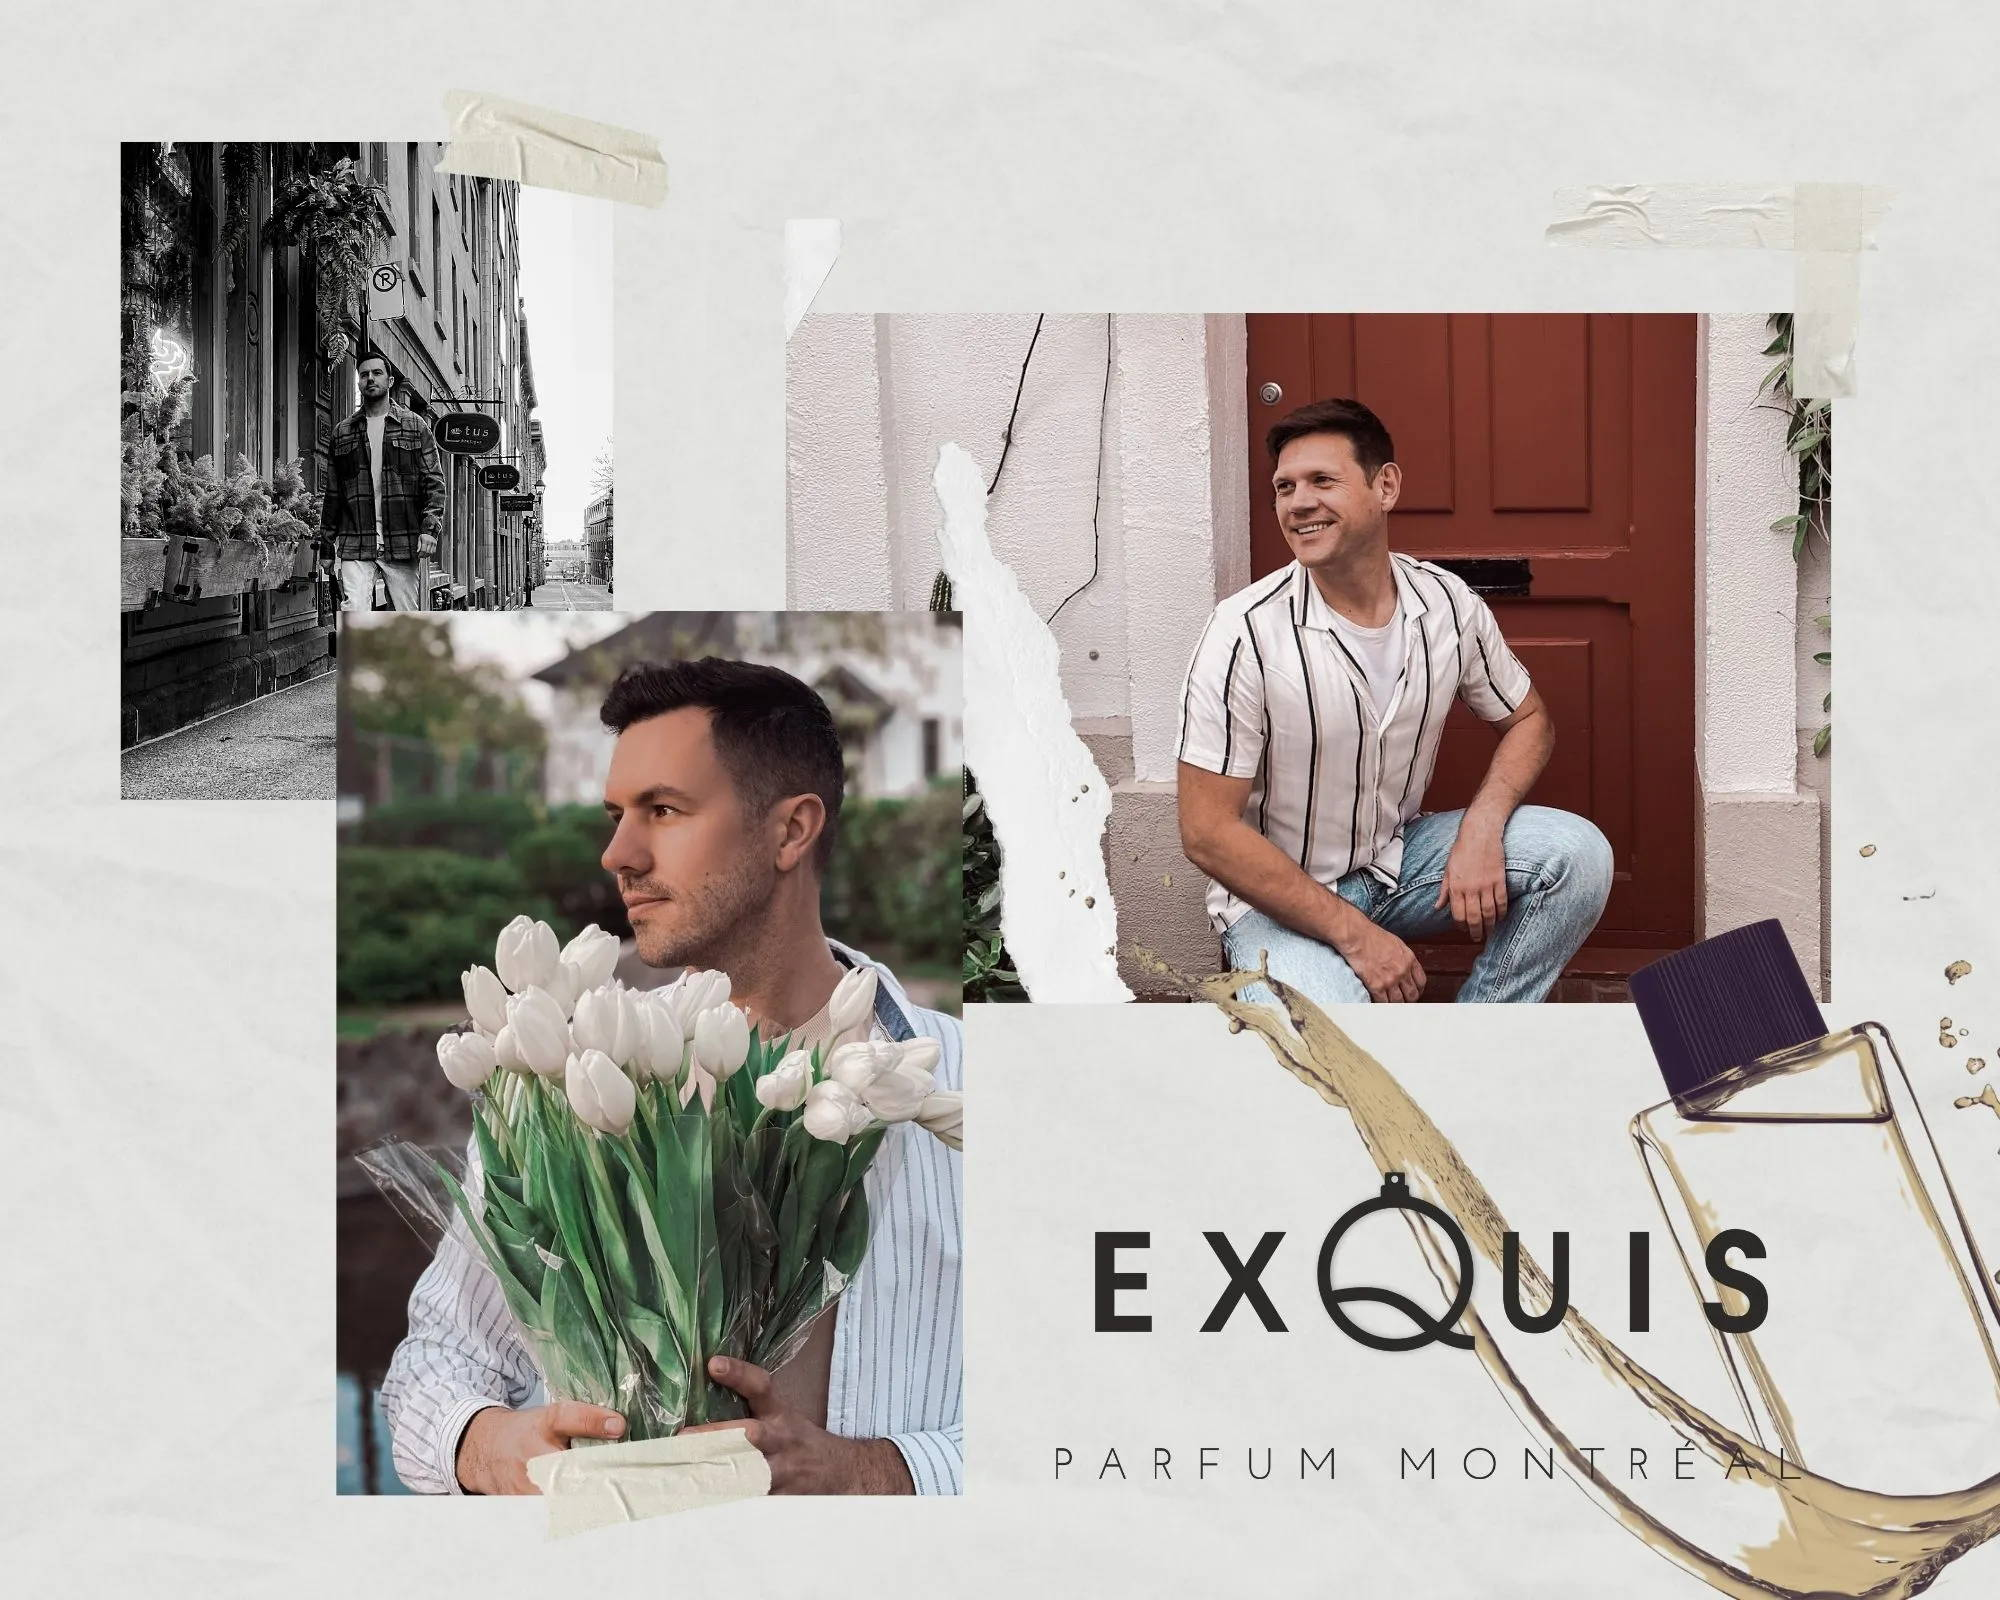 co-founders of Parfum Exquis